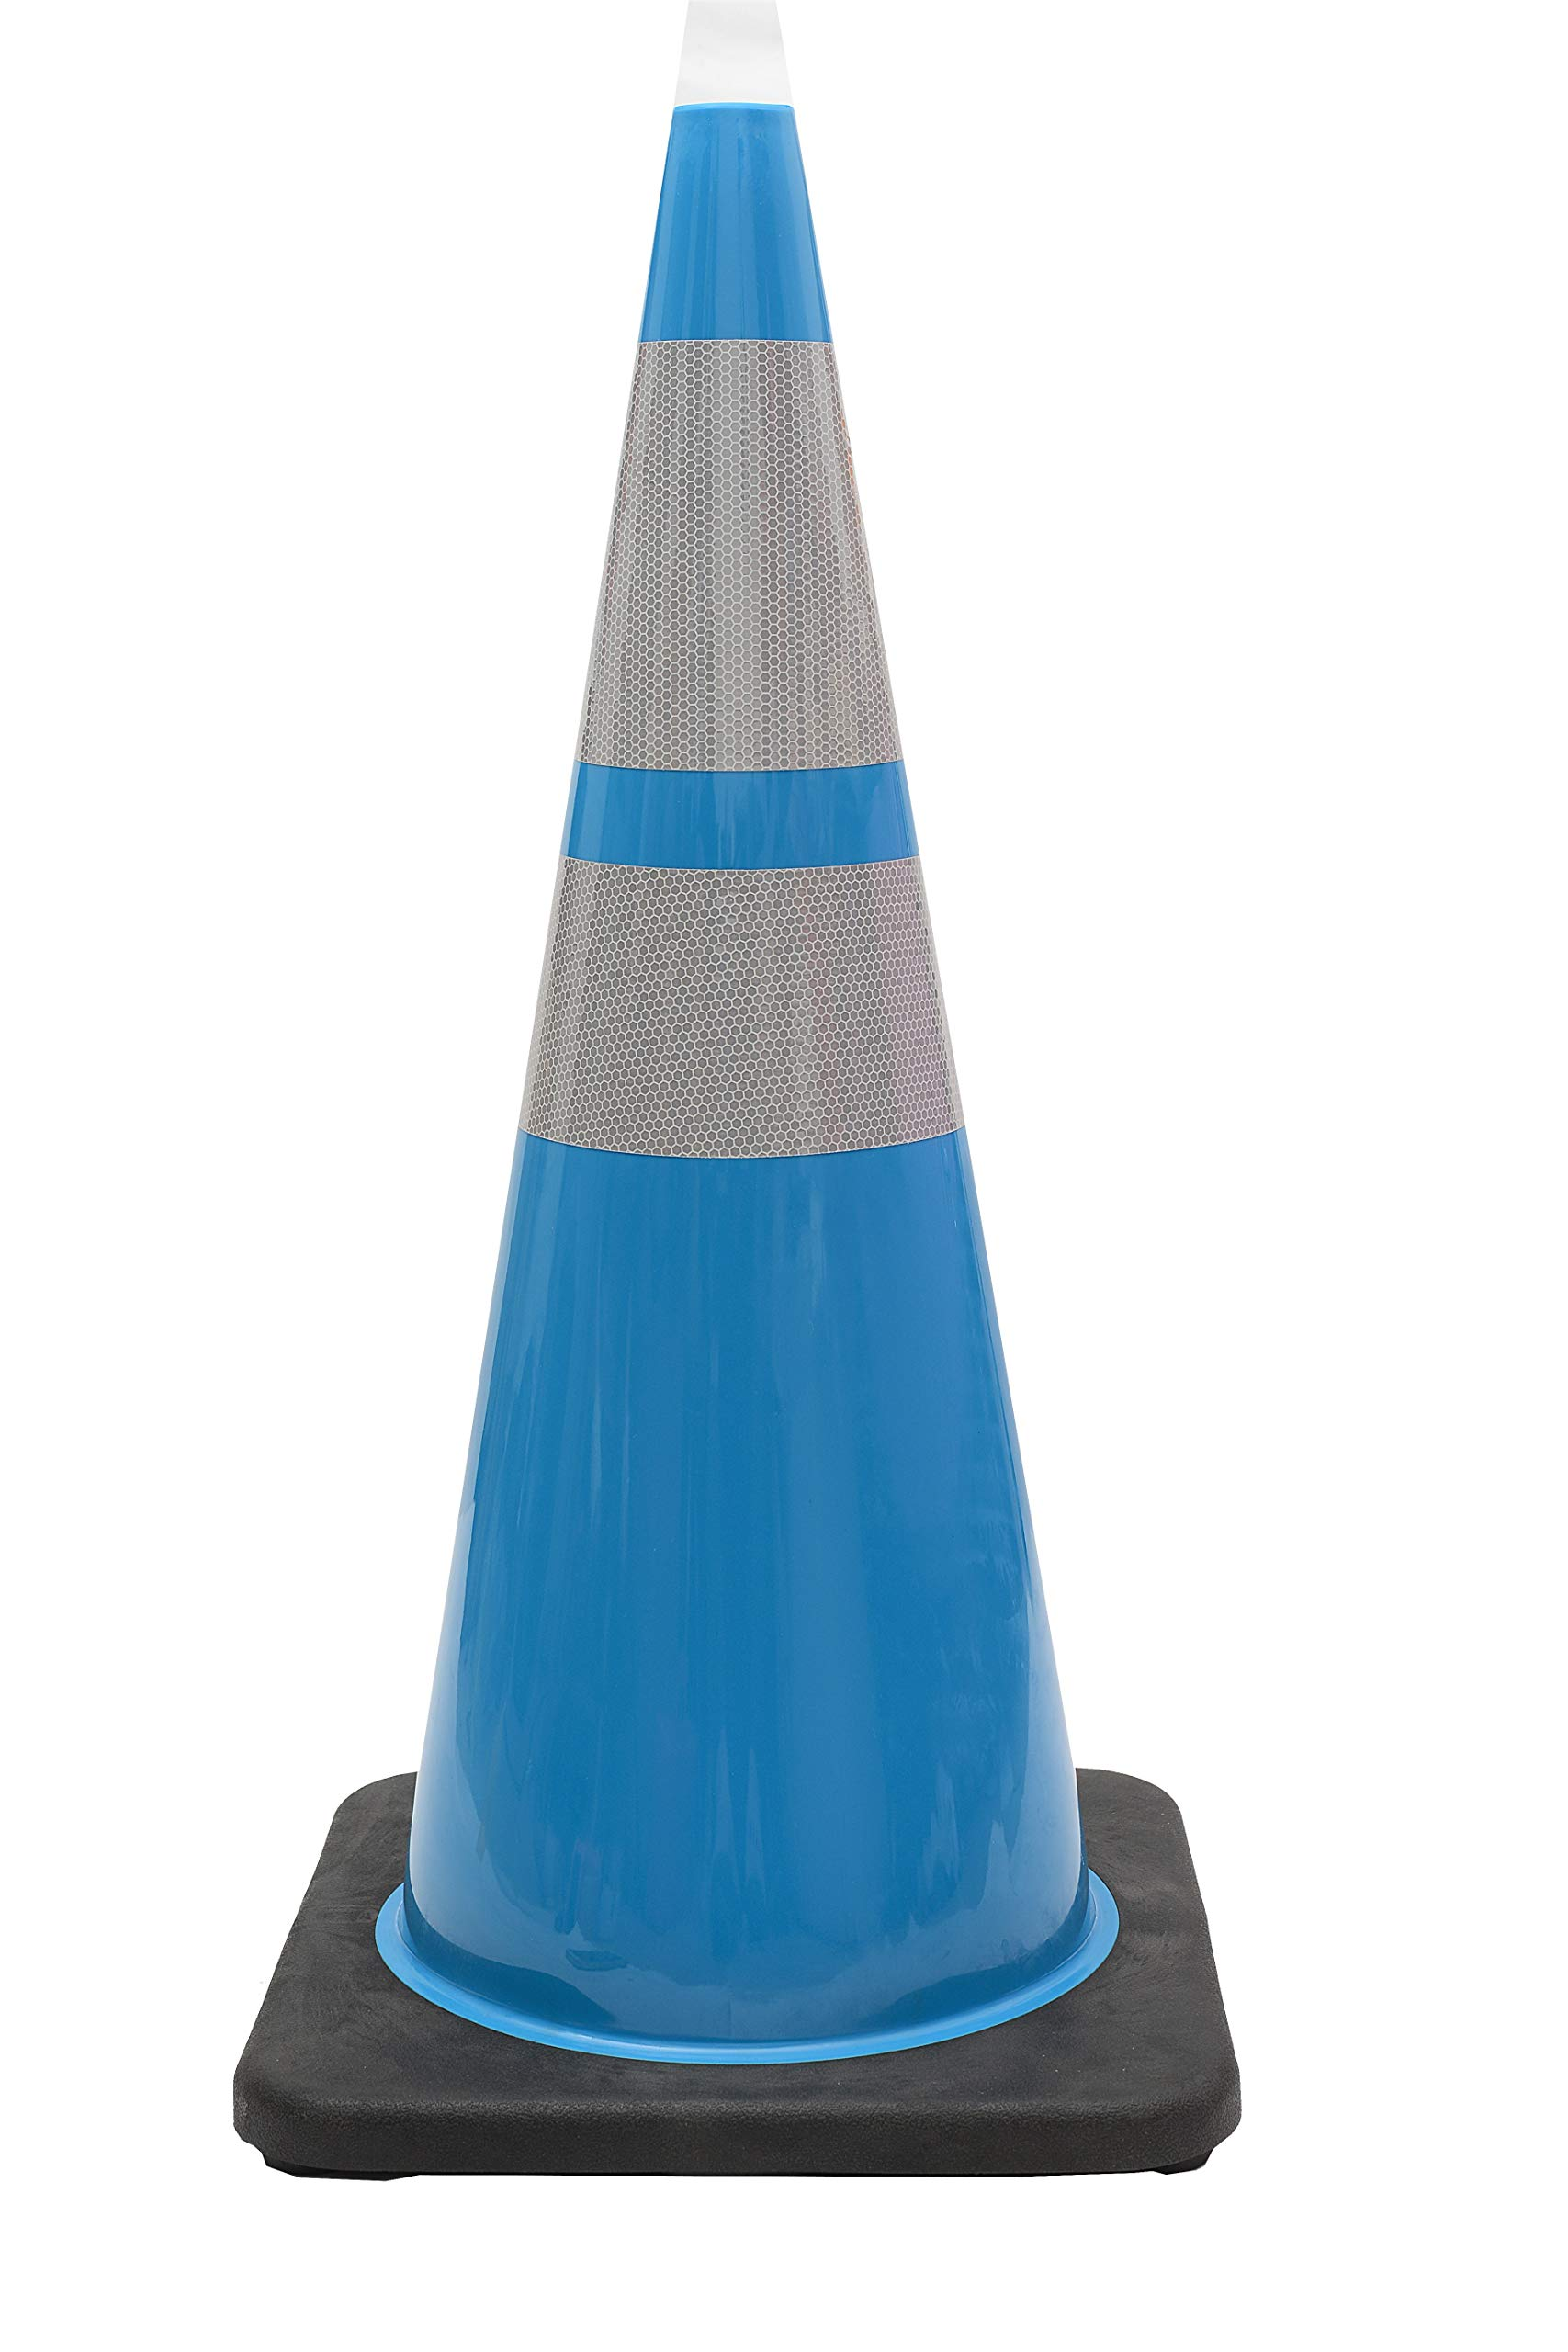 CJ Safety 28'' Blue PVC Traffic Safety Cones with Heavy Duty Black Base & 6'' + 4'' Reflective Collars (8 Cones)